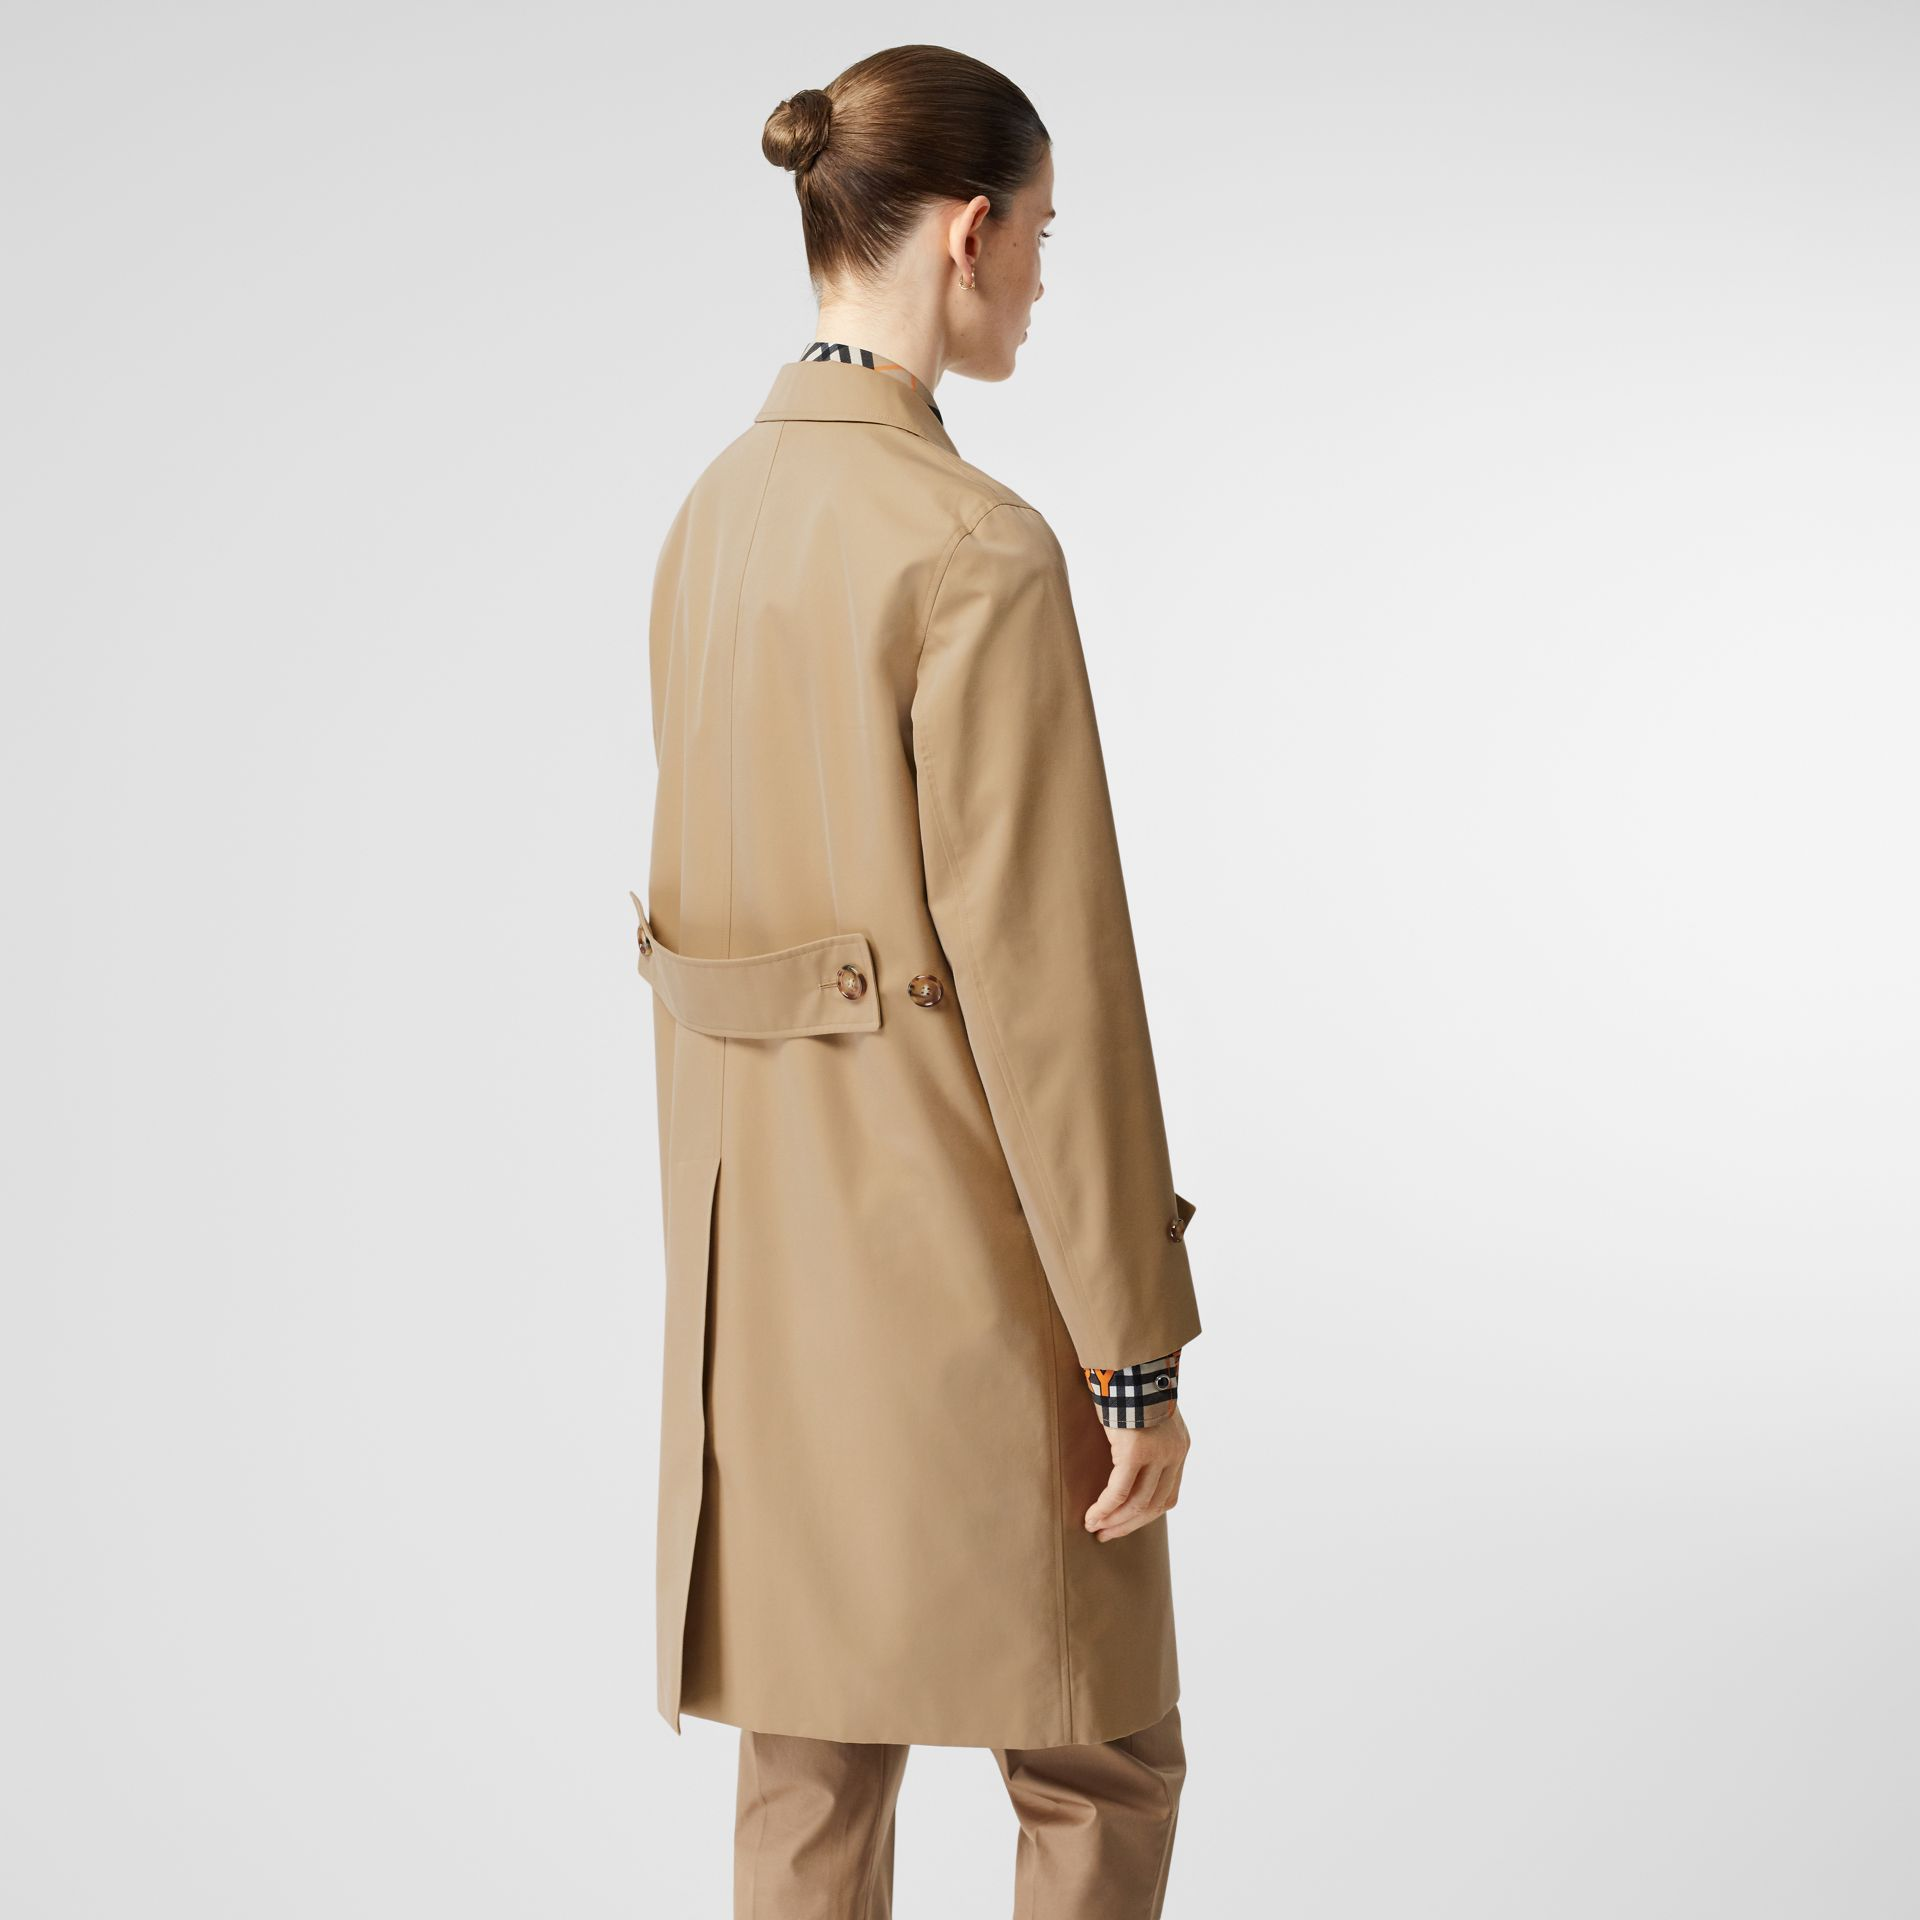 Cotton Gabardine Lab Coat in Honey - Women | Burberry Hong Kong S.A.R - gallery image 2